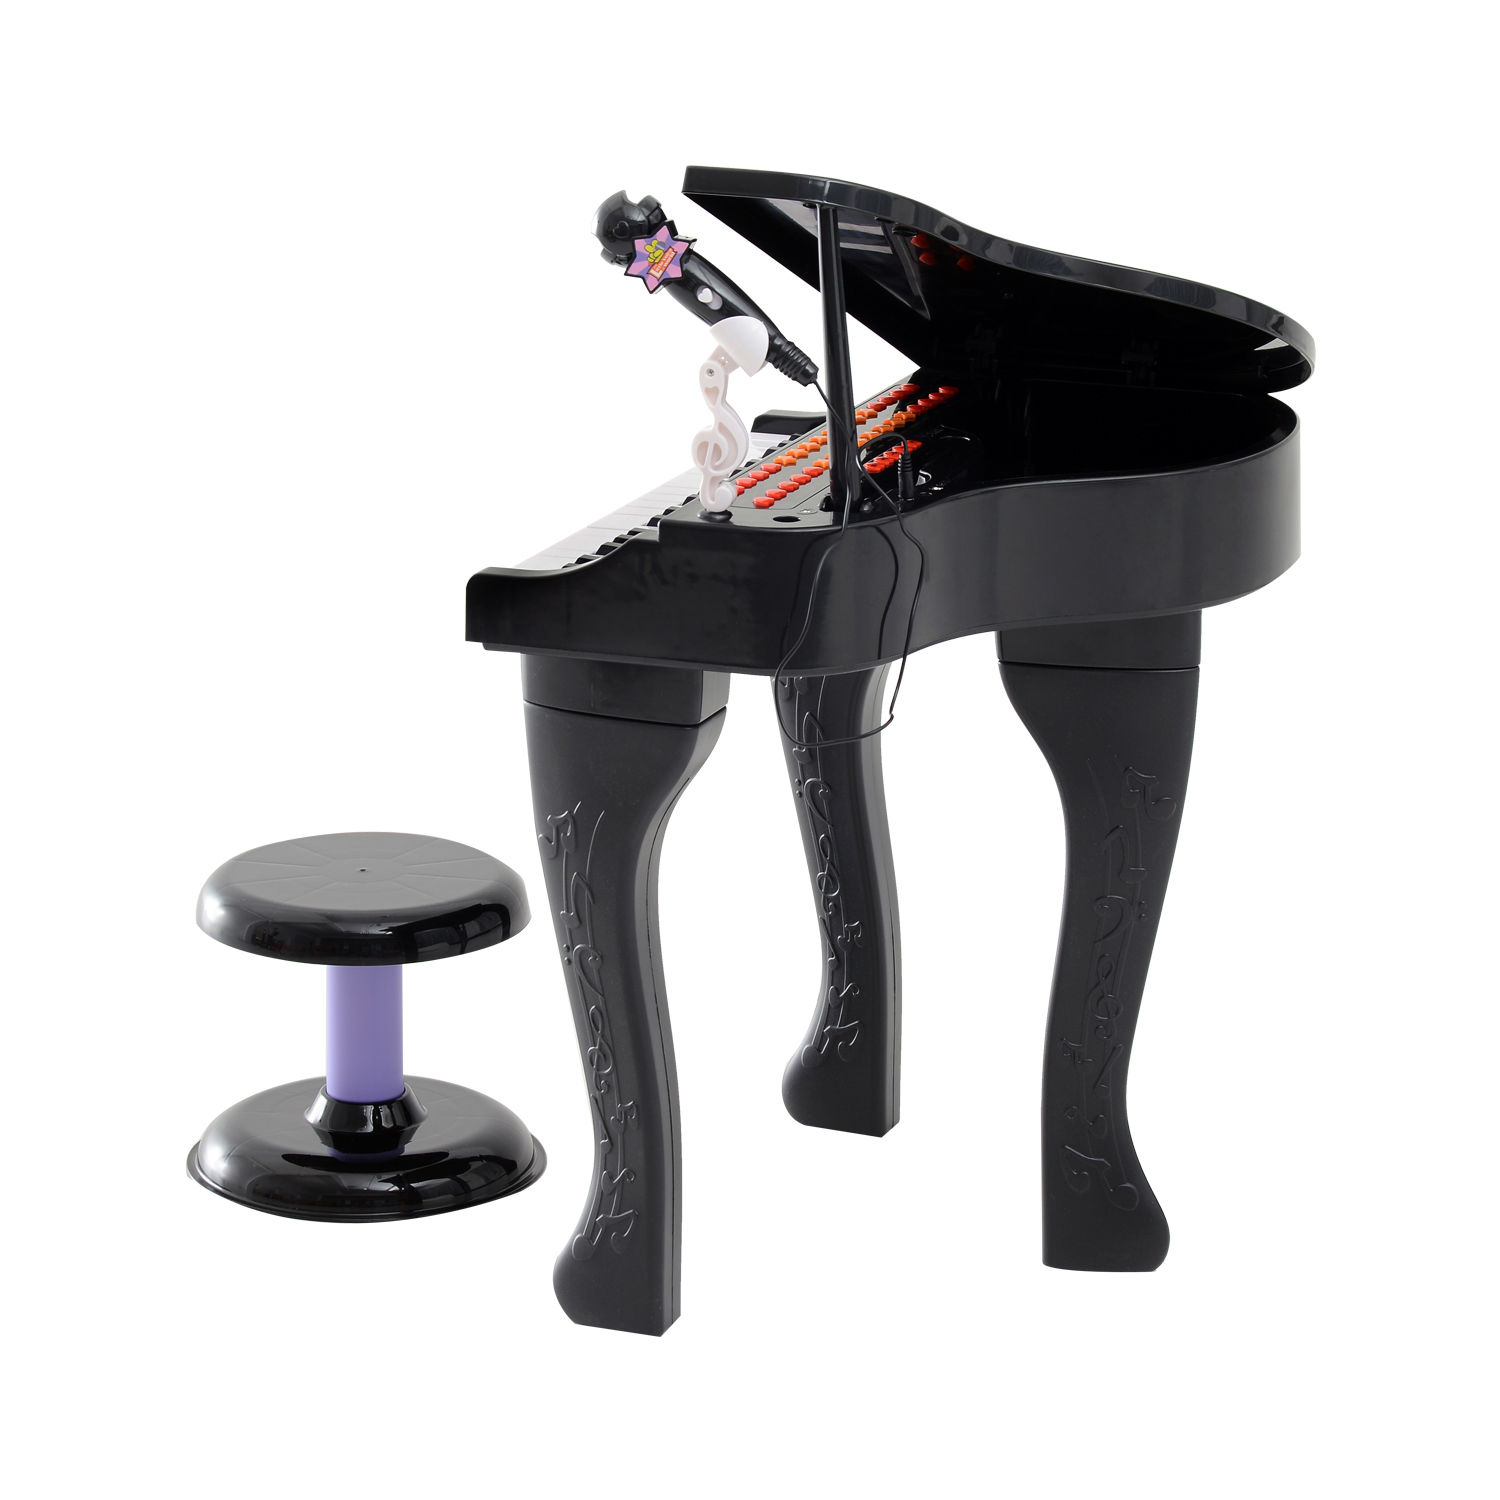 37-32-Key-Kids-Electronic-Keyboard-Mini-Grand-Piano-Stool-Microphone-Musical-Toy thumbnail 5